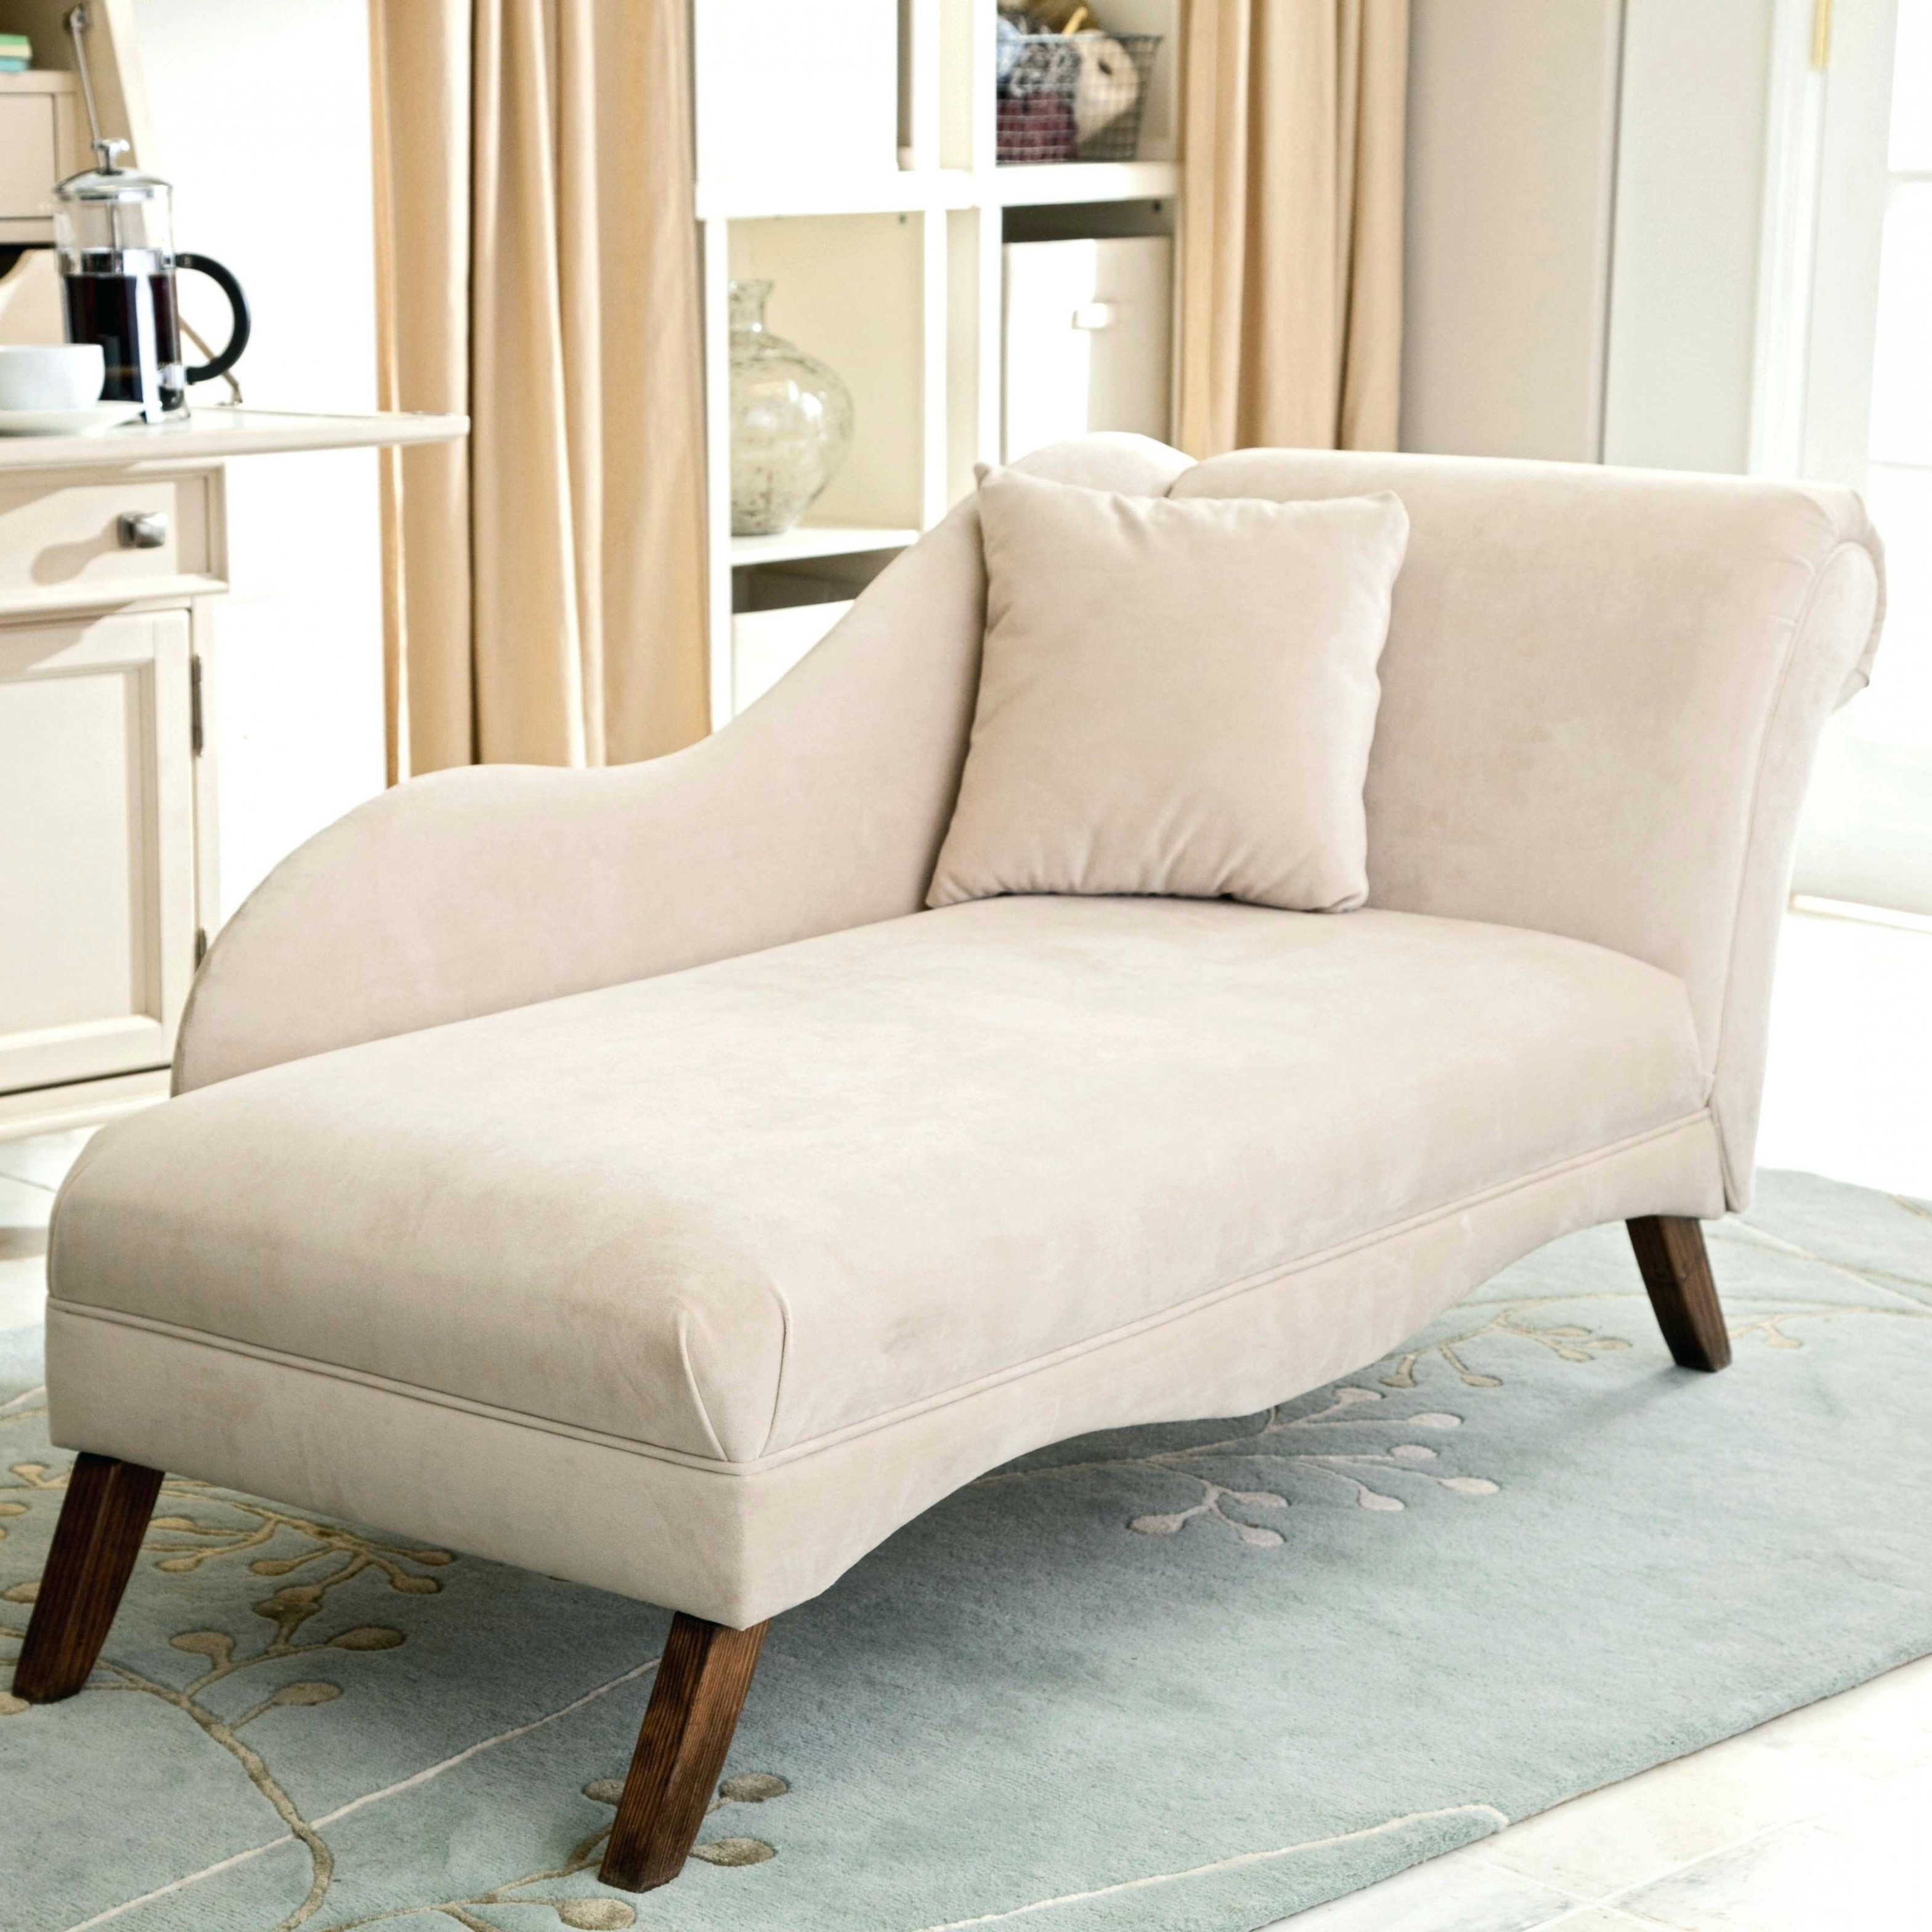 Most Recently Released Small Chaise Lounge Chairs For Bedroom Within Home Decor: Small Chaise Lounge Chairs For Bedroom French Style (View 7 of 15)